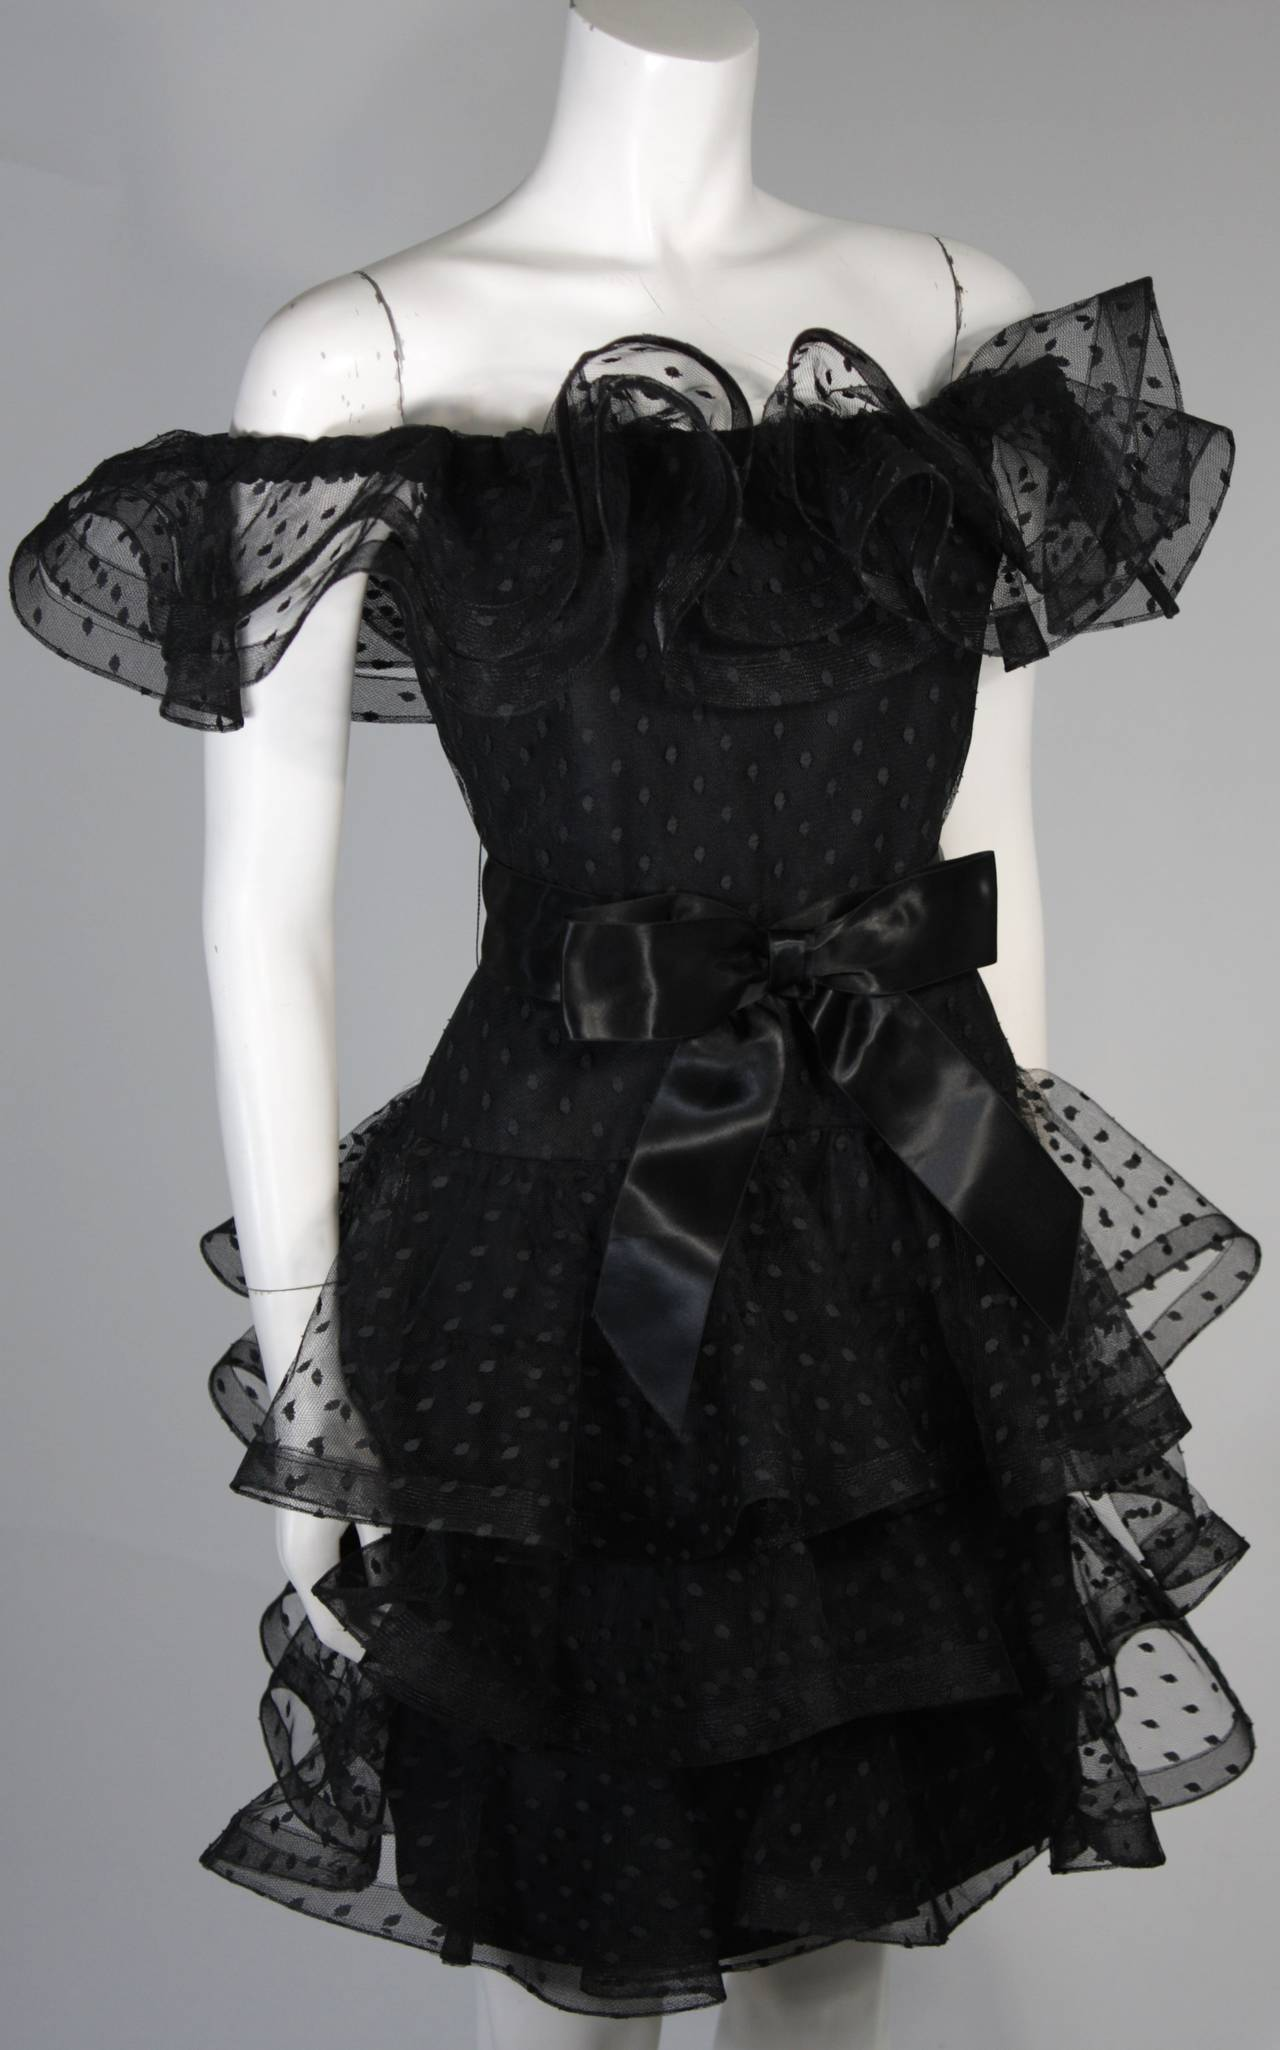 Victor Costa Black Cocktail Dress with Ruffled Horsehair Hemlines Size 2 For Sale 1